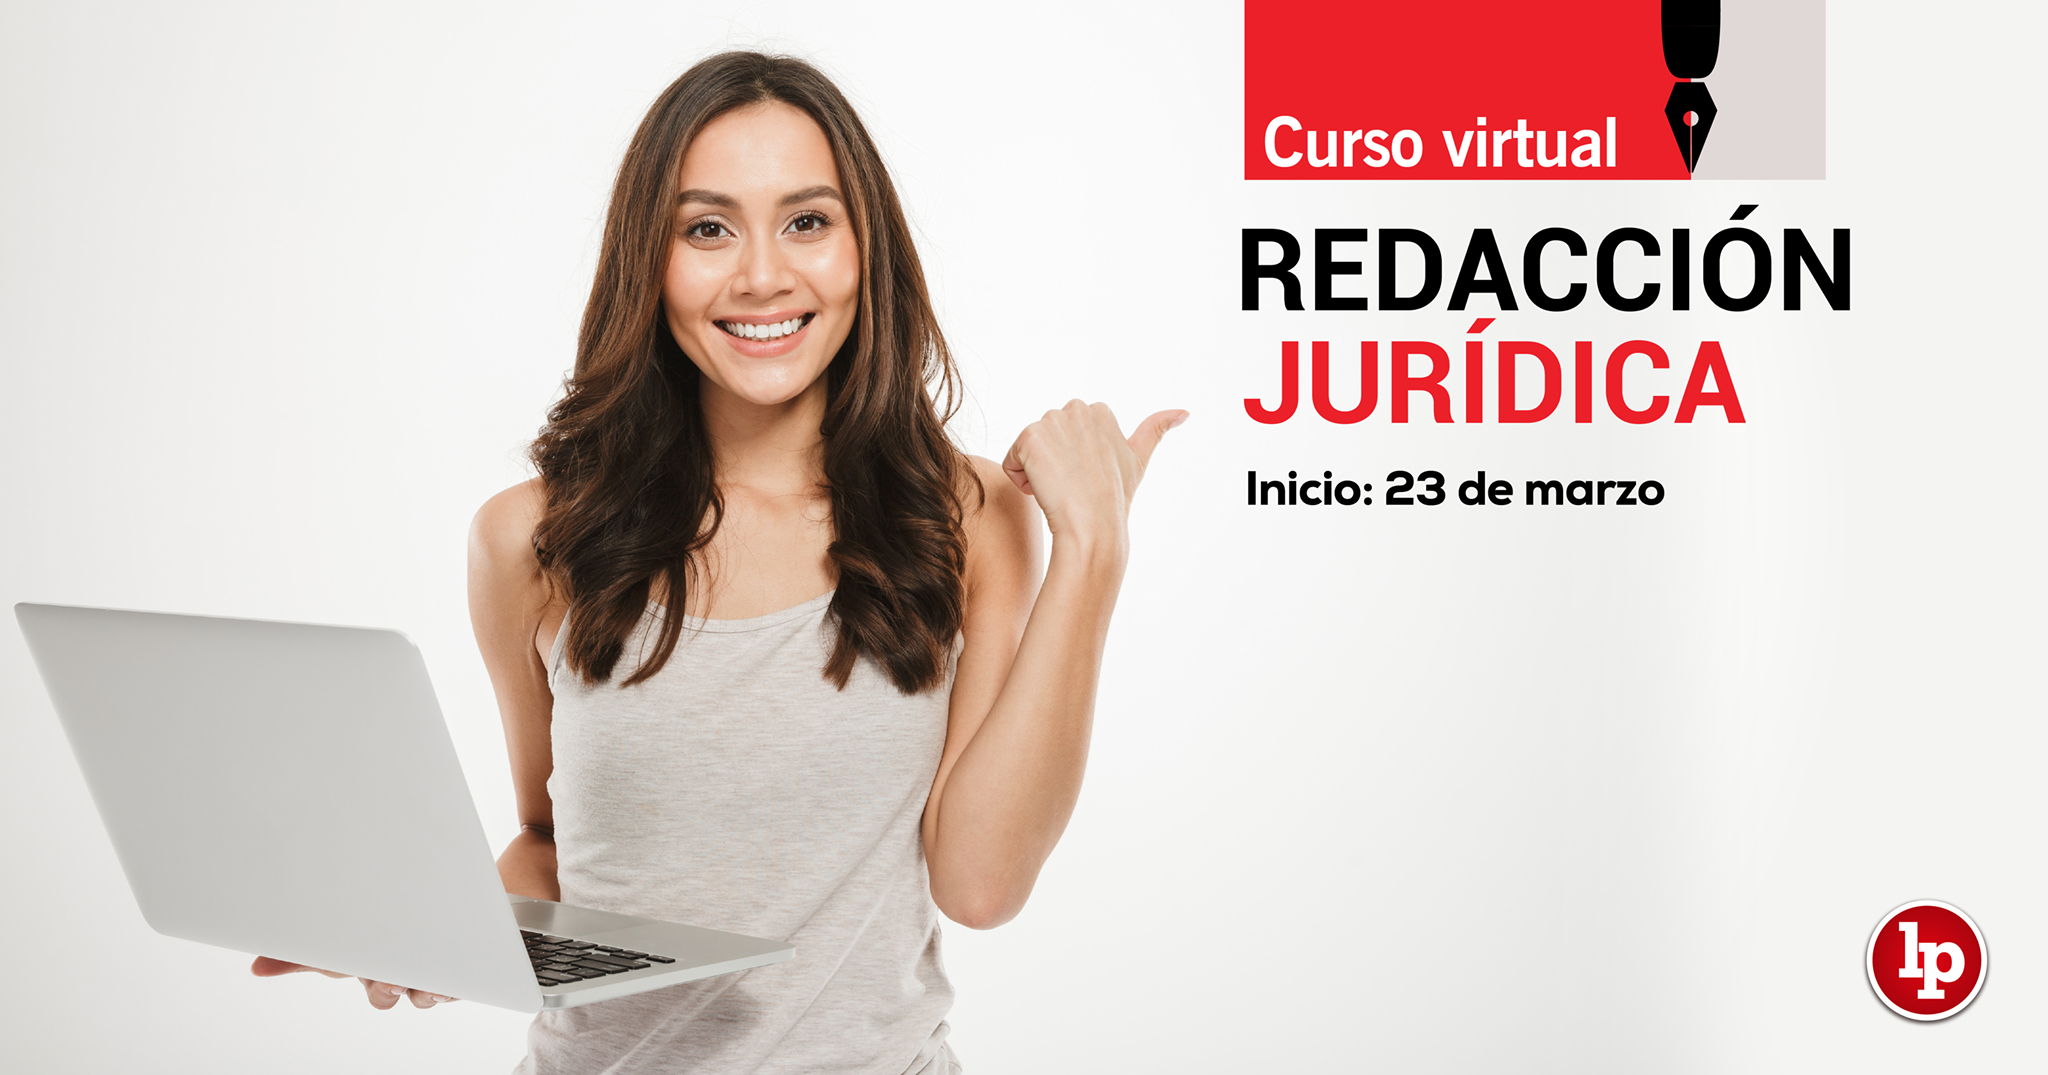 Curso-virtual-redaccion-juridica (1)